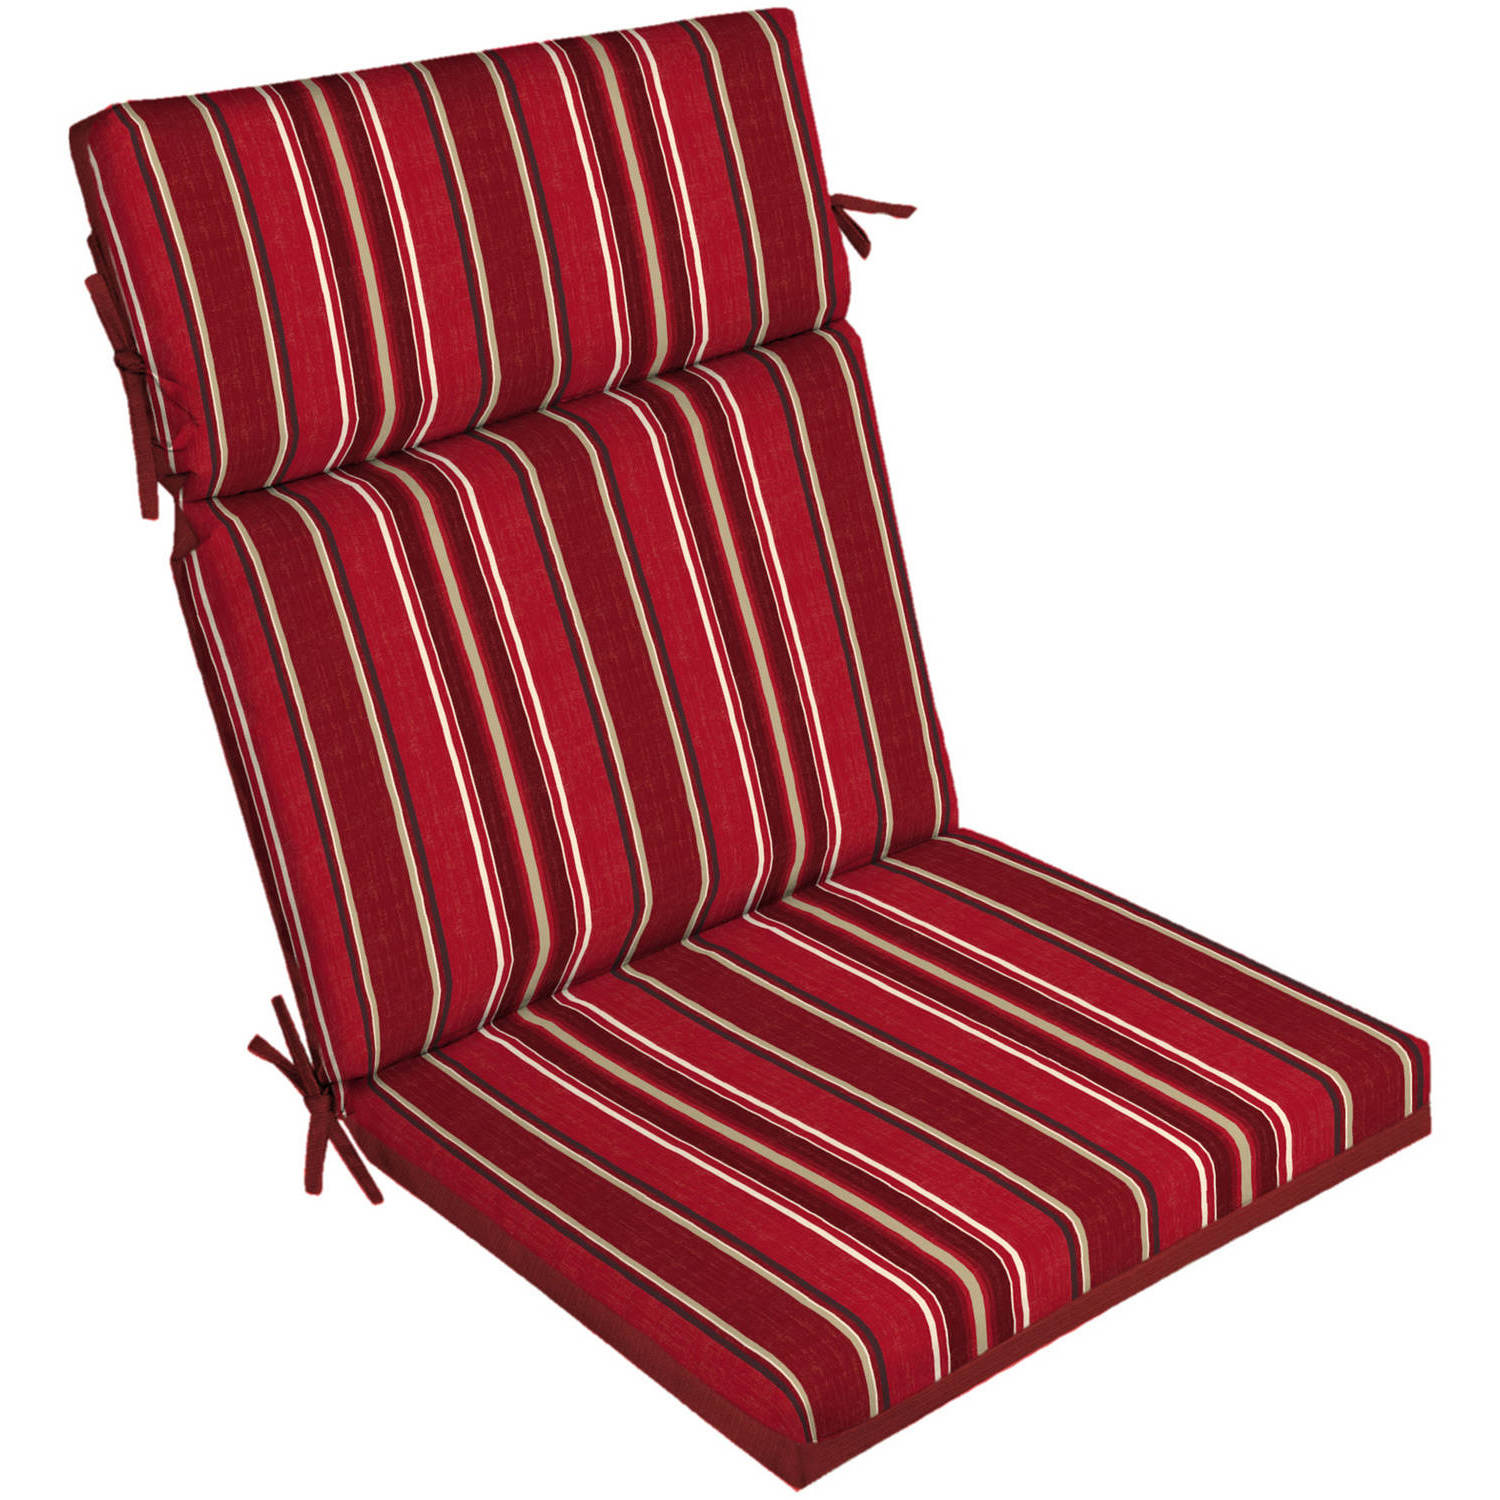 walmart patio chair cushions covers direct better homes and gardens outdoor reversible dining departments